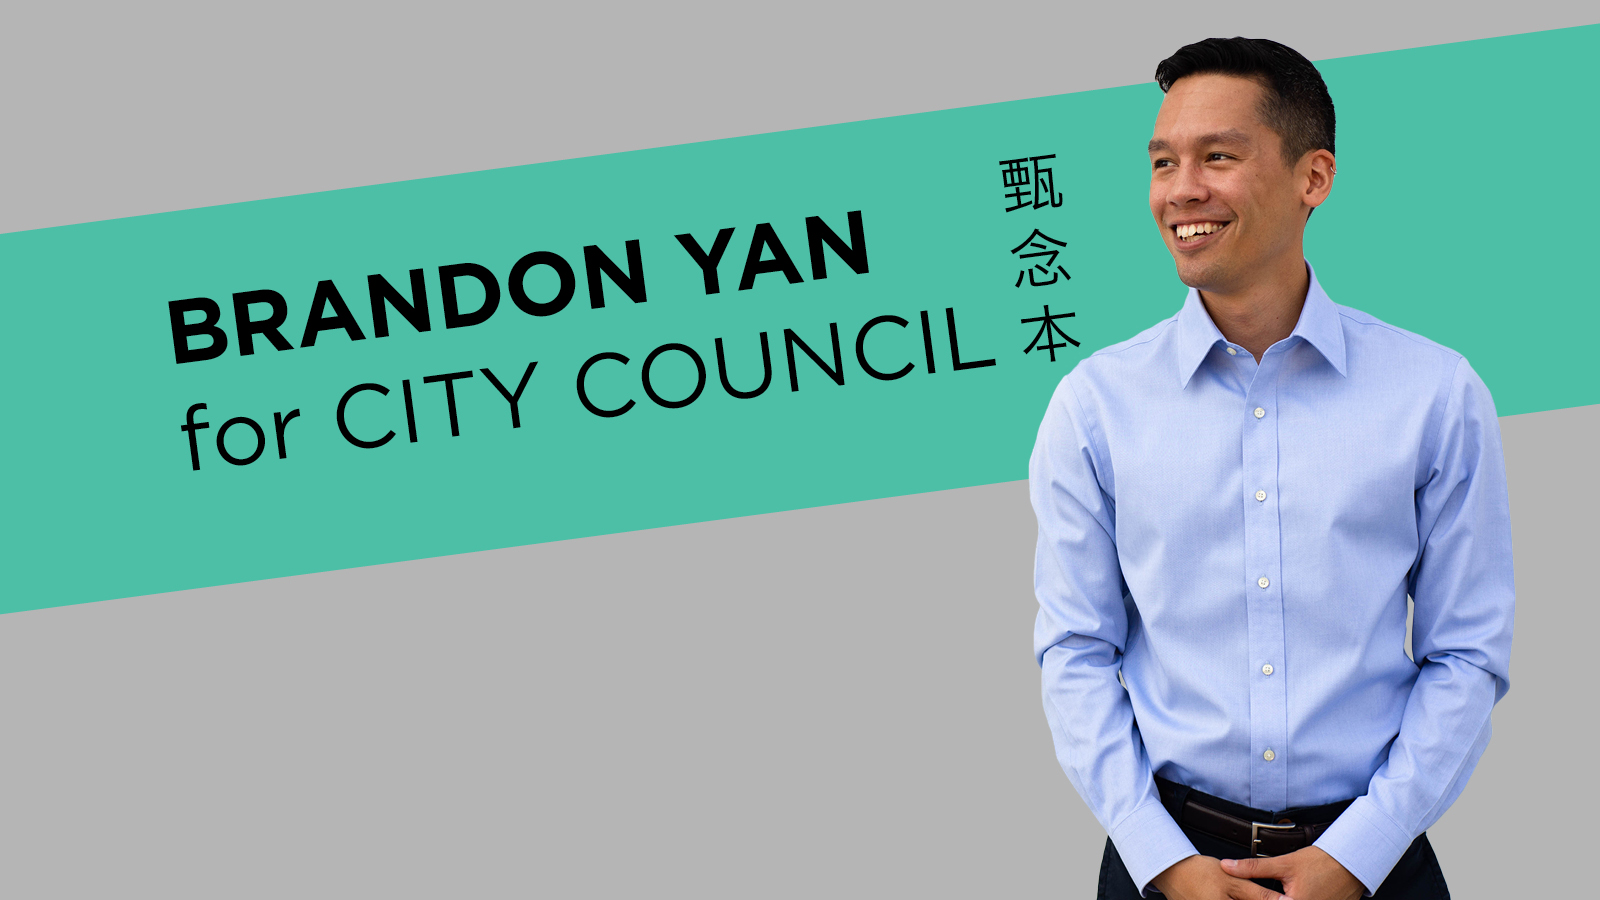 Brandon Yan for City Council with Banner